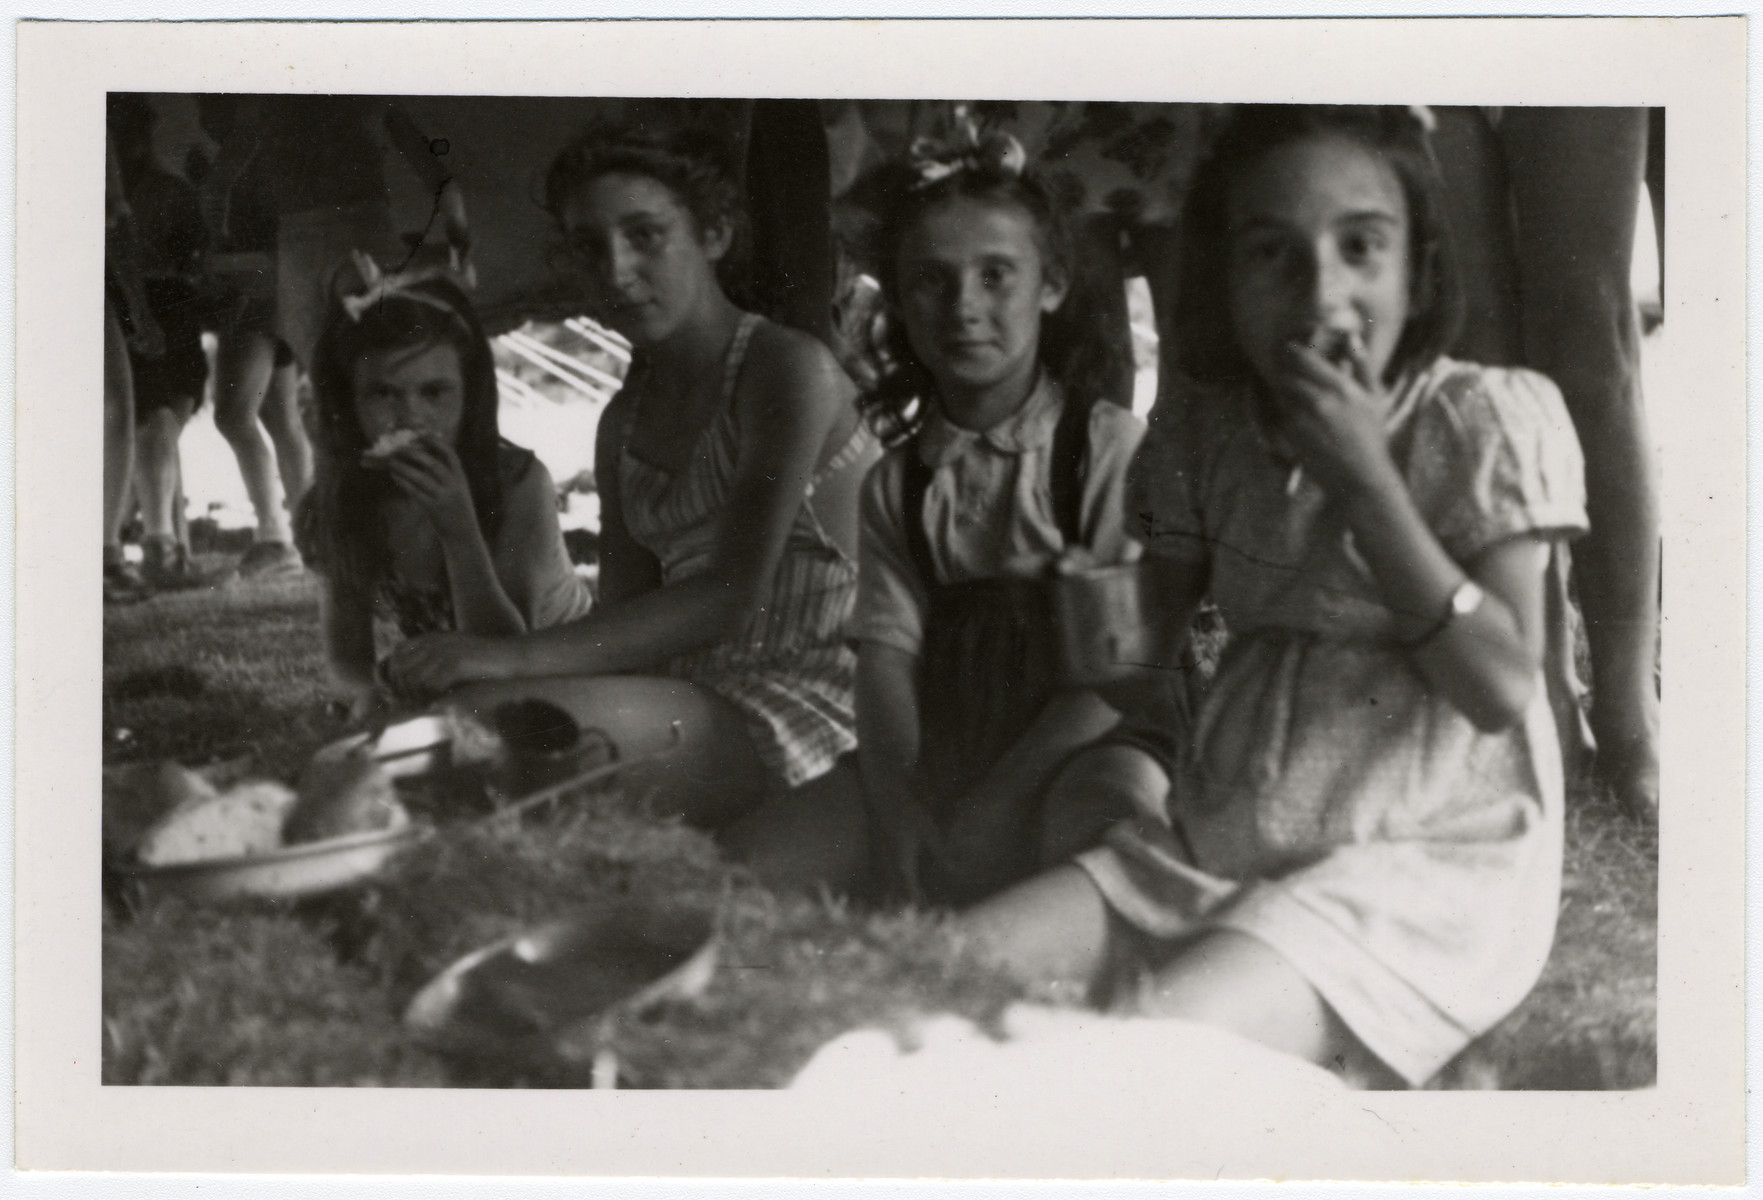 Four girls sit on the ground in a tent eating a meal in an unidentified displaced person's camp.